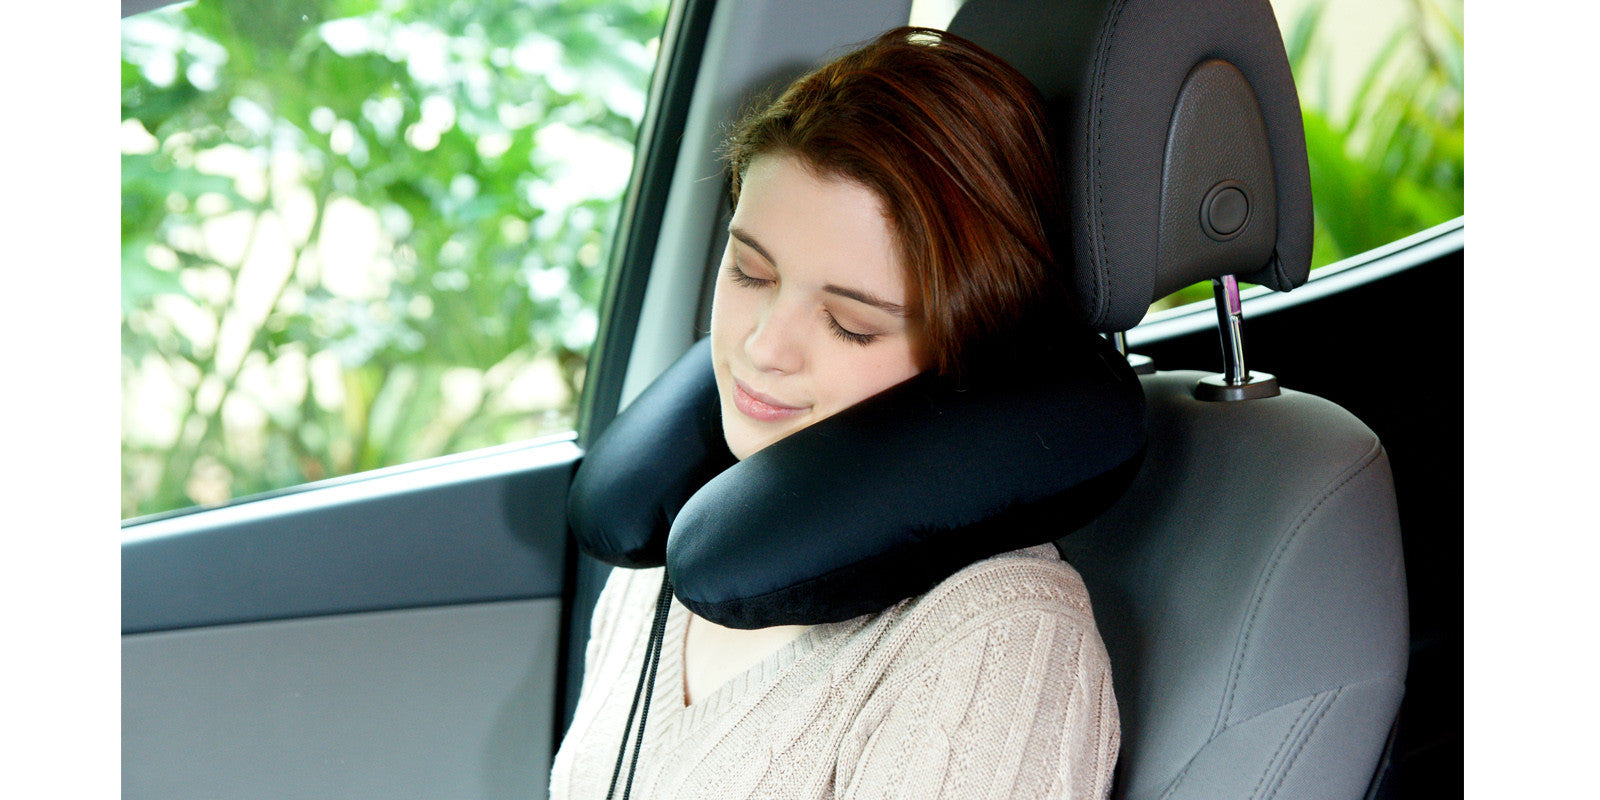 Microbead Travel Pillow